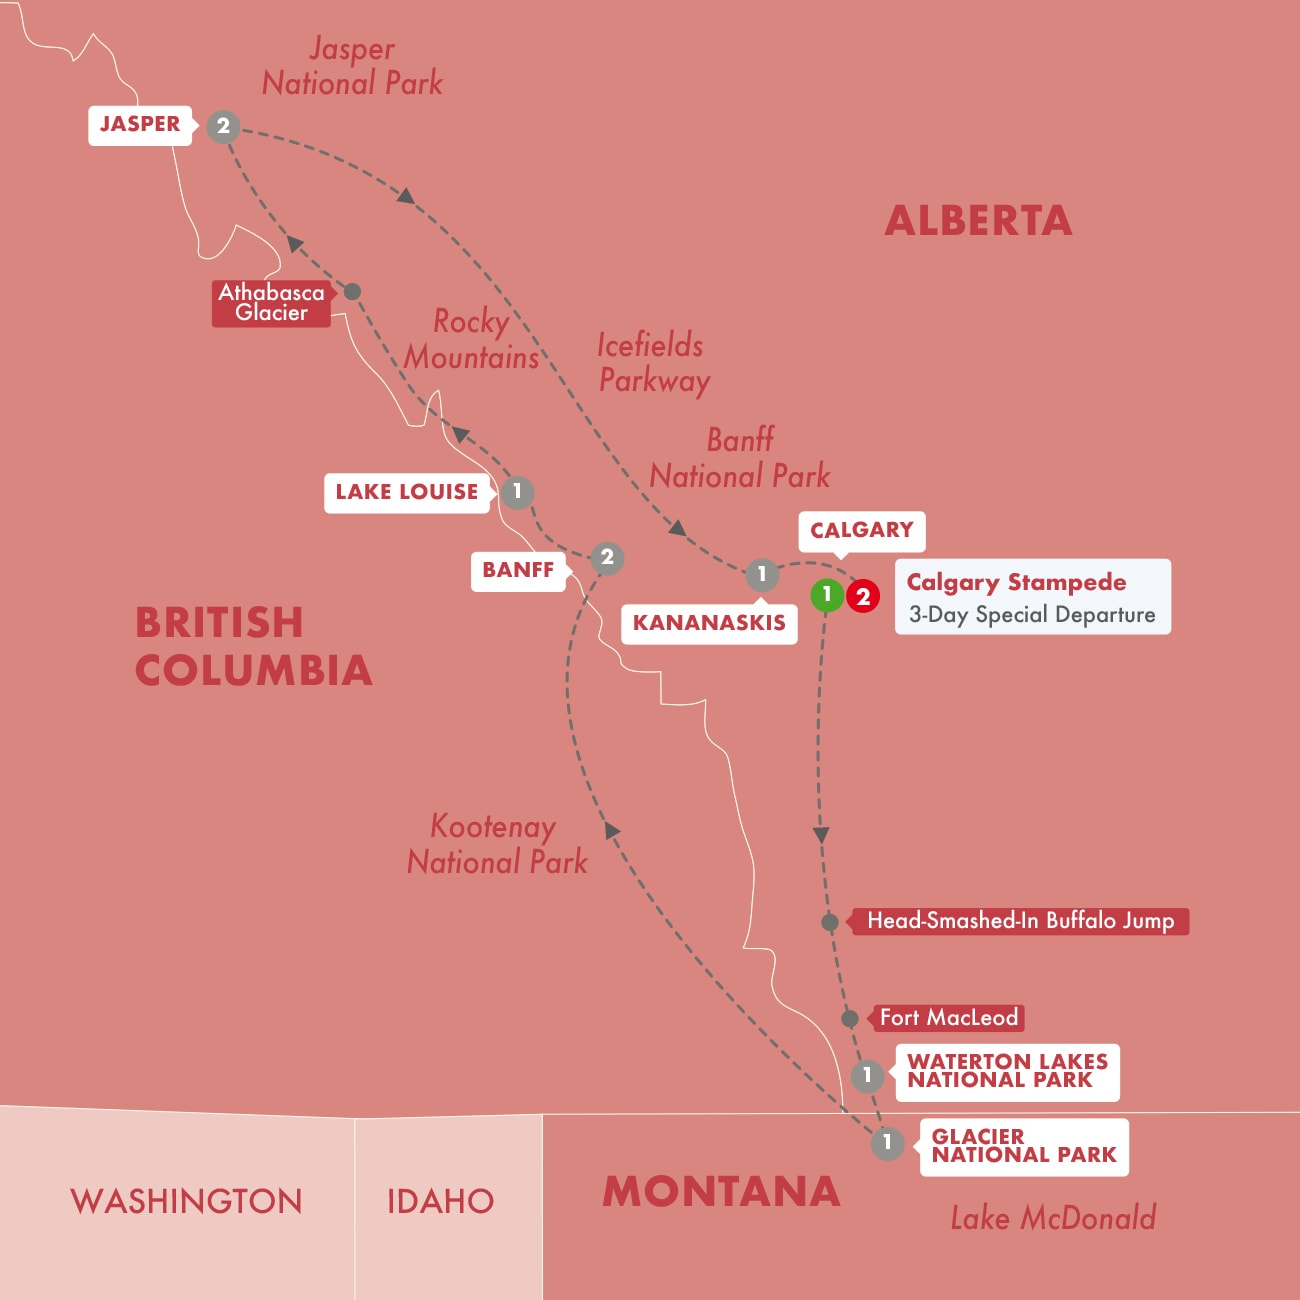 Secrets of the Rockies and Glacier National Park with Calgary Stampede Map